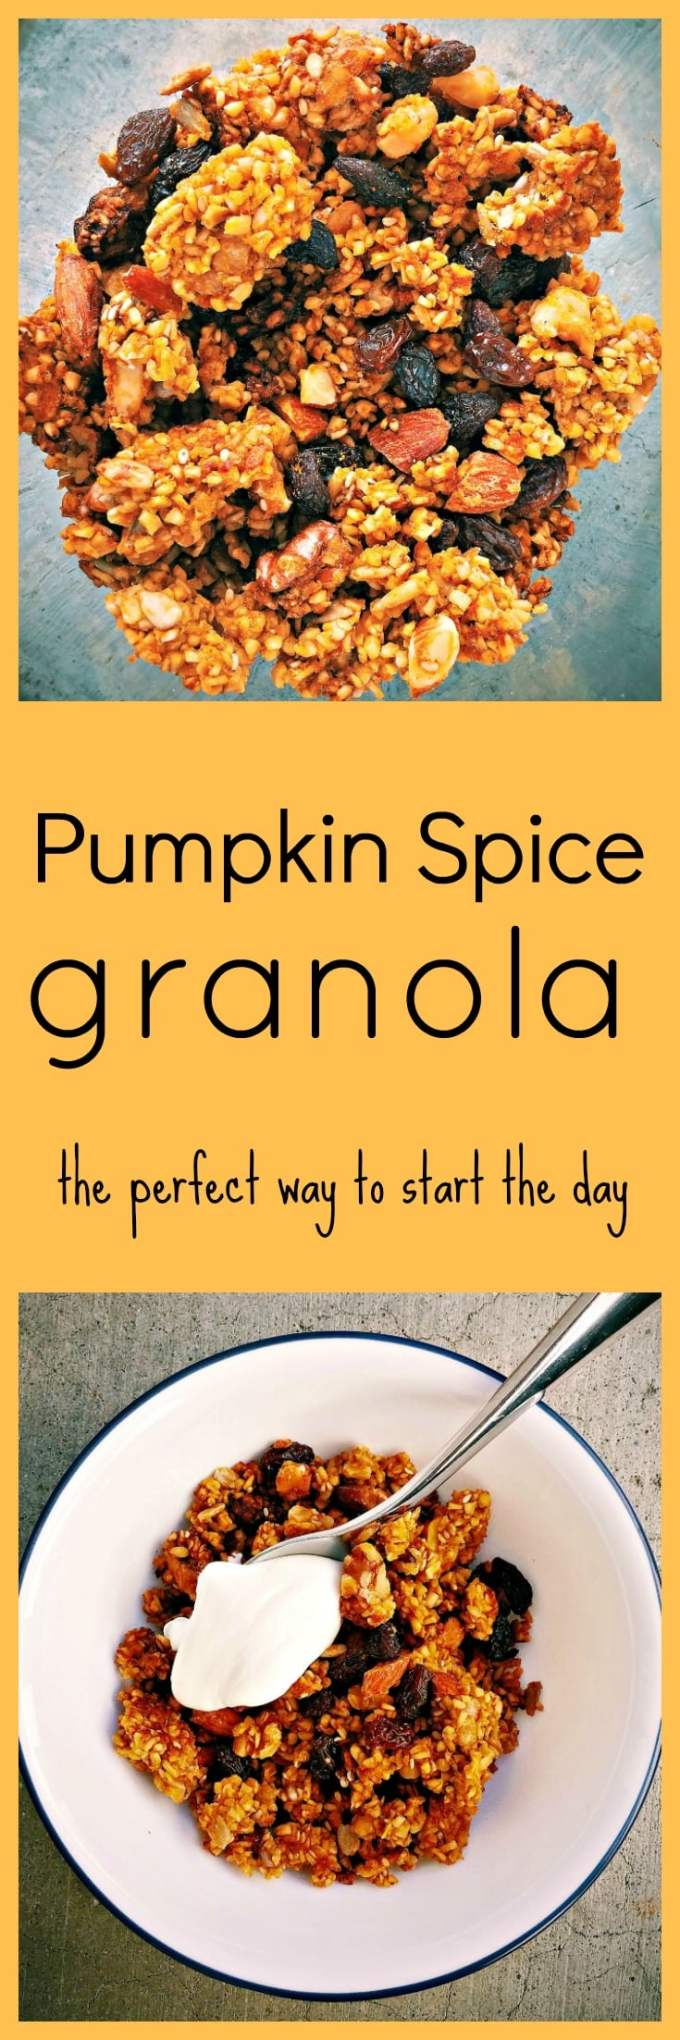 Easy to make pumpkin spice granola which will make your house smell beautiful while it gets all toasty in the oven. Pairs great with yogurt for breakfast.